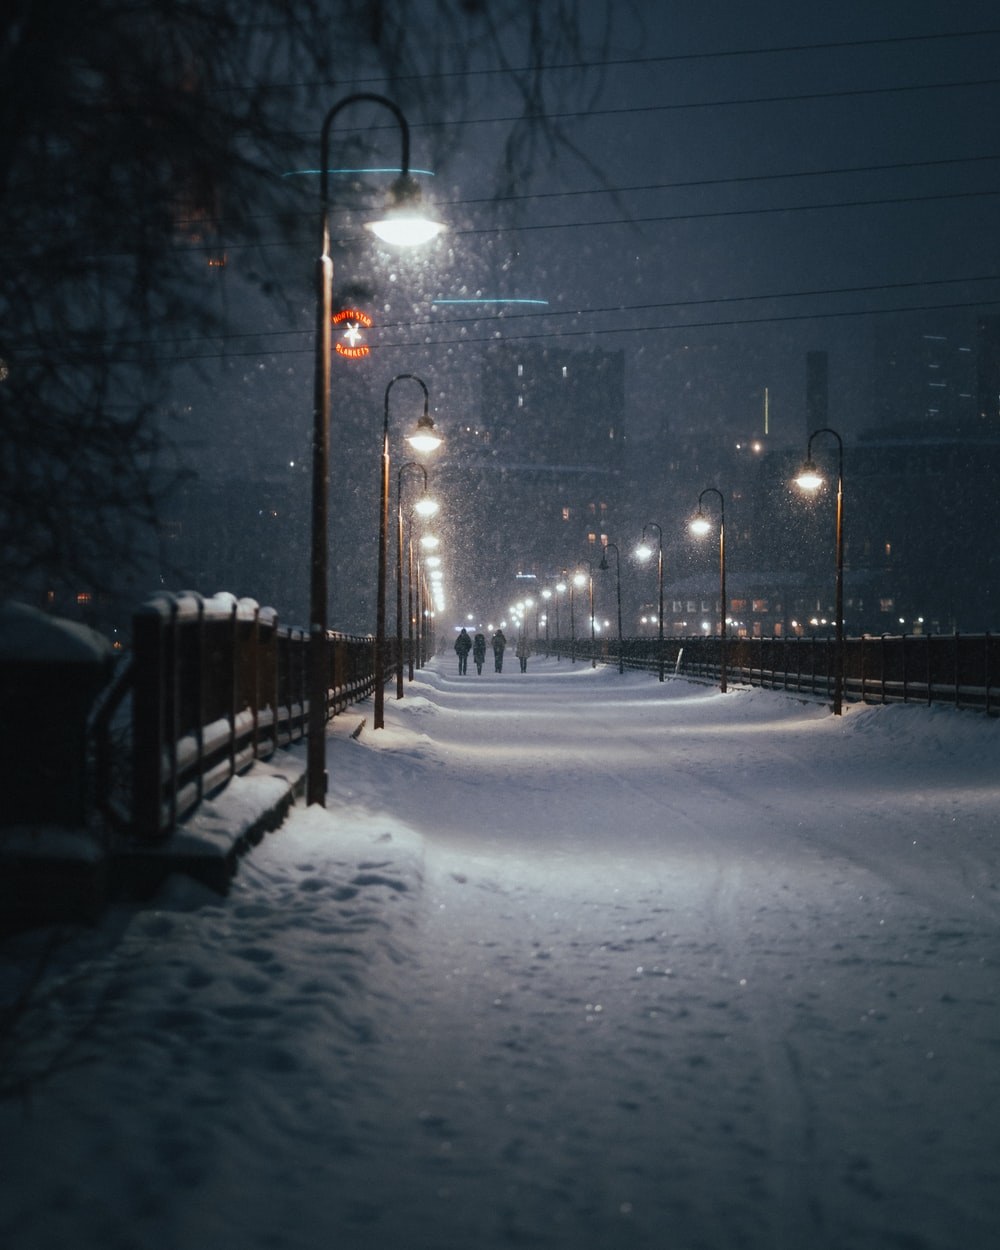 snow covered road during night time